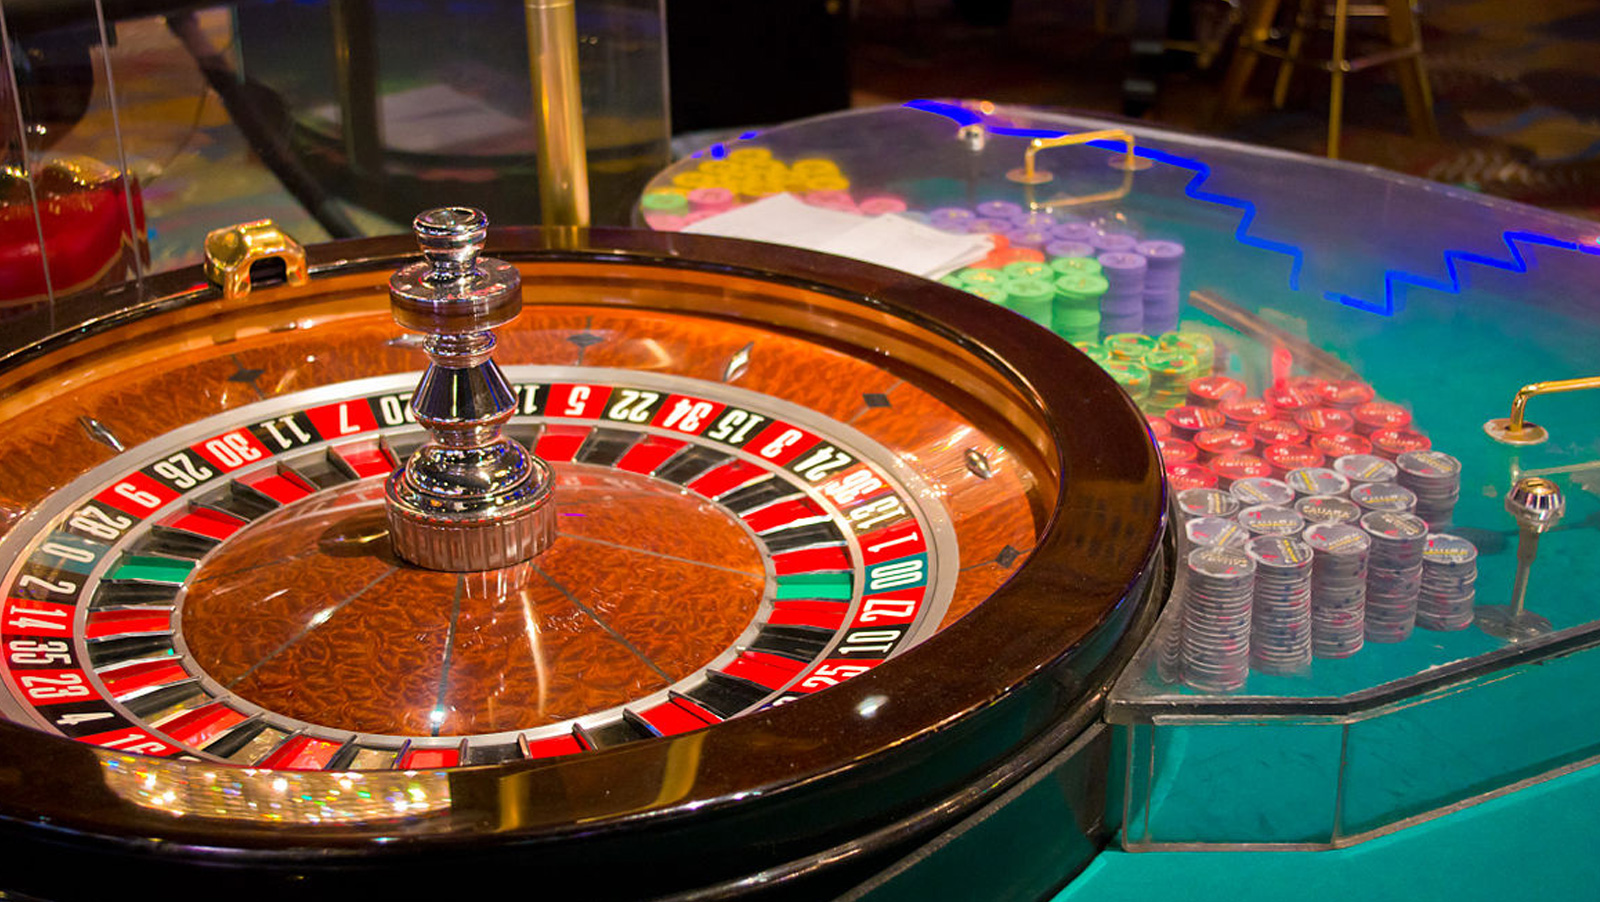 Lower slot machine payouts hurting sales according to game makers